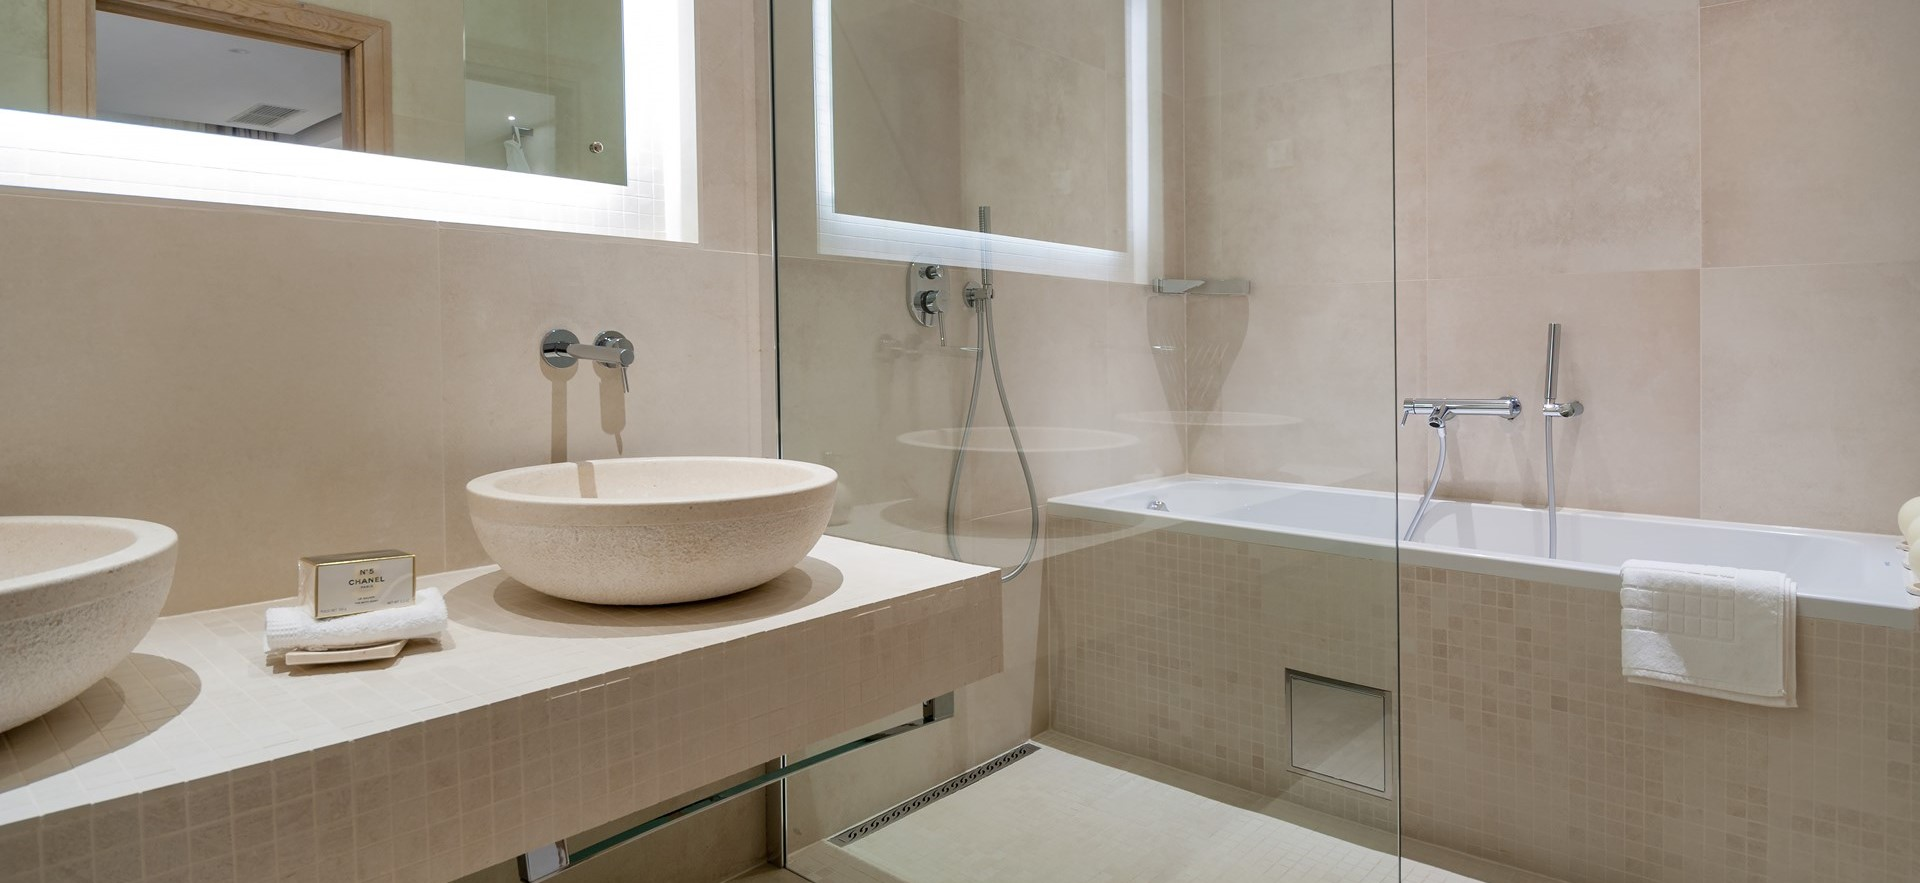 sumartin-bay-house-modern-bathrooms